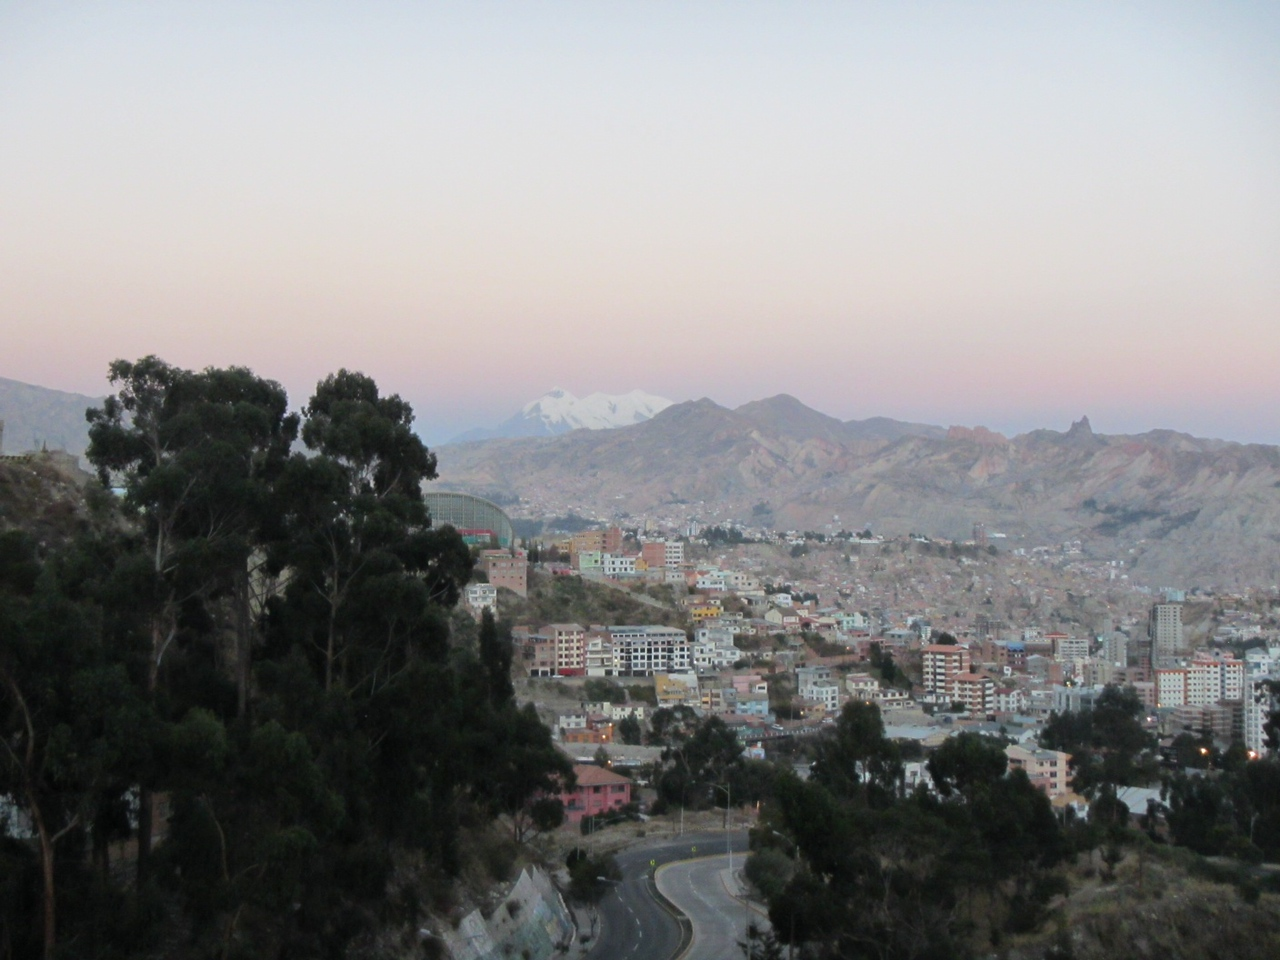 Overlooking La Paz. Mountain in background is Illimani, 16,350 feet above sea level.